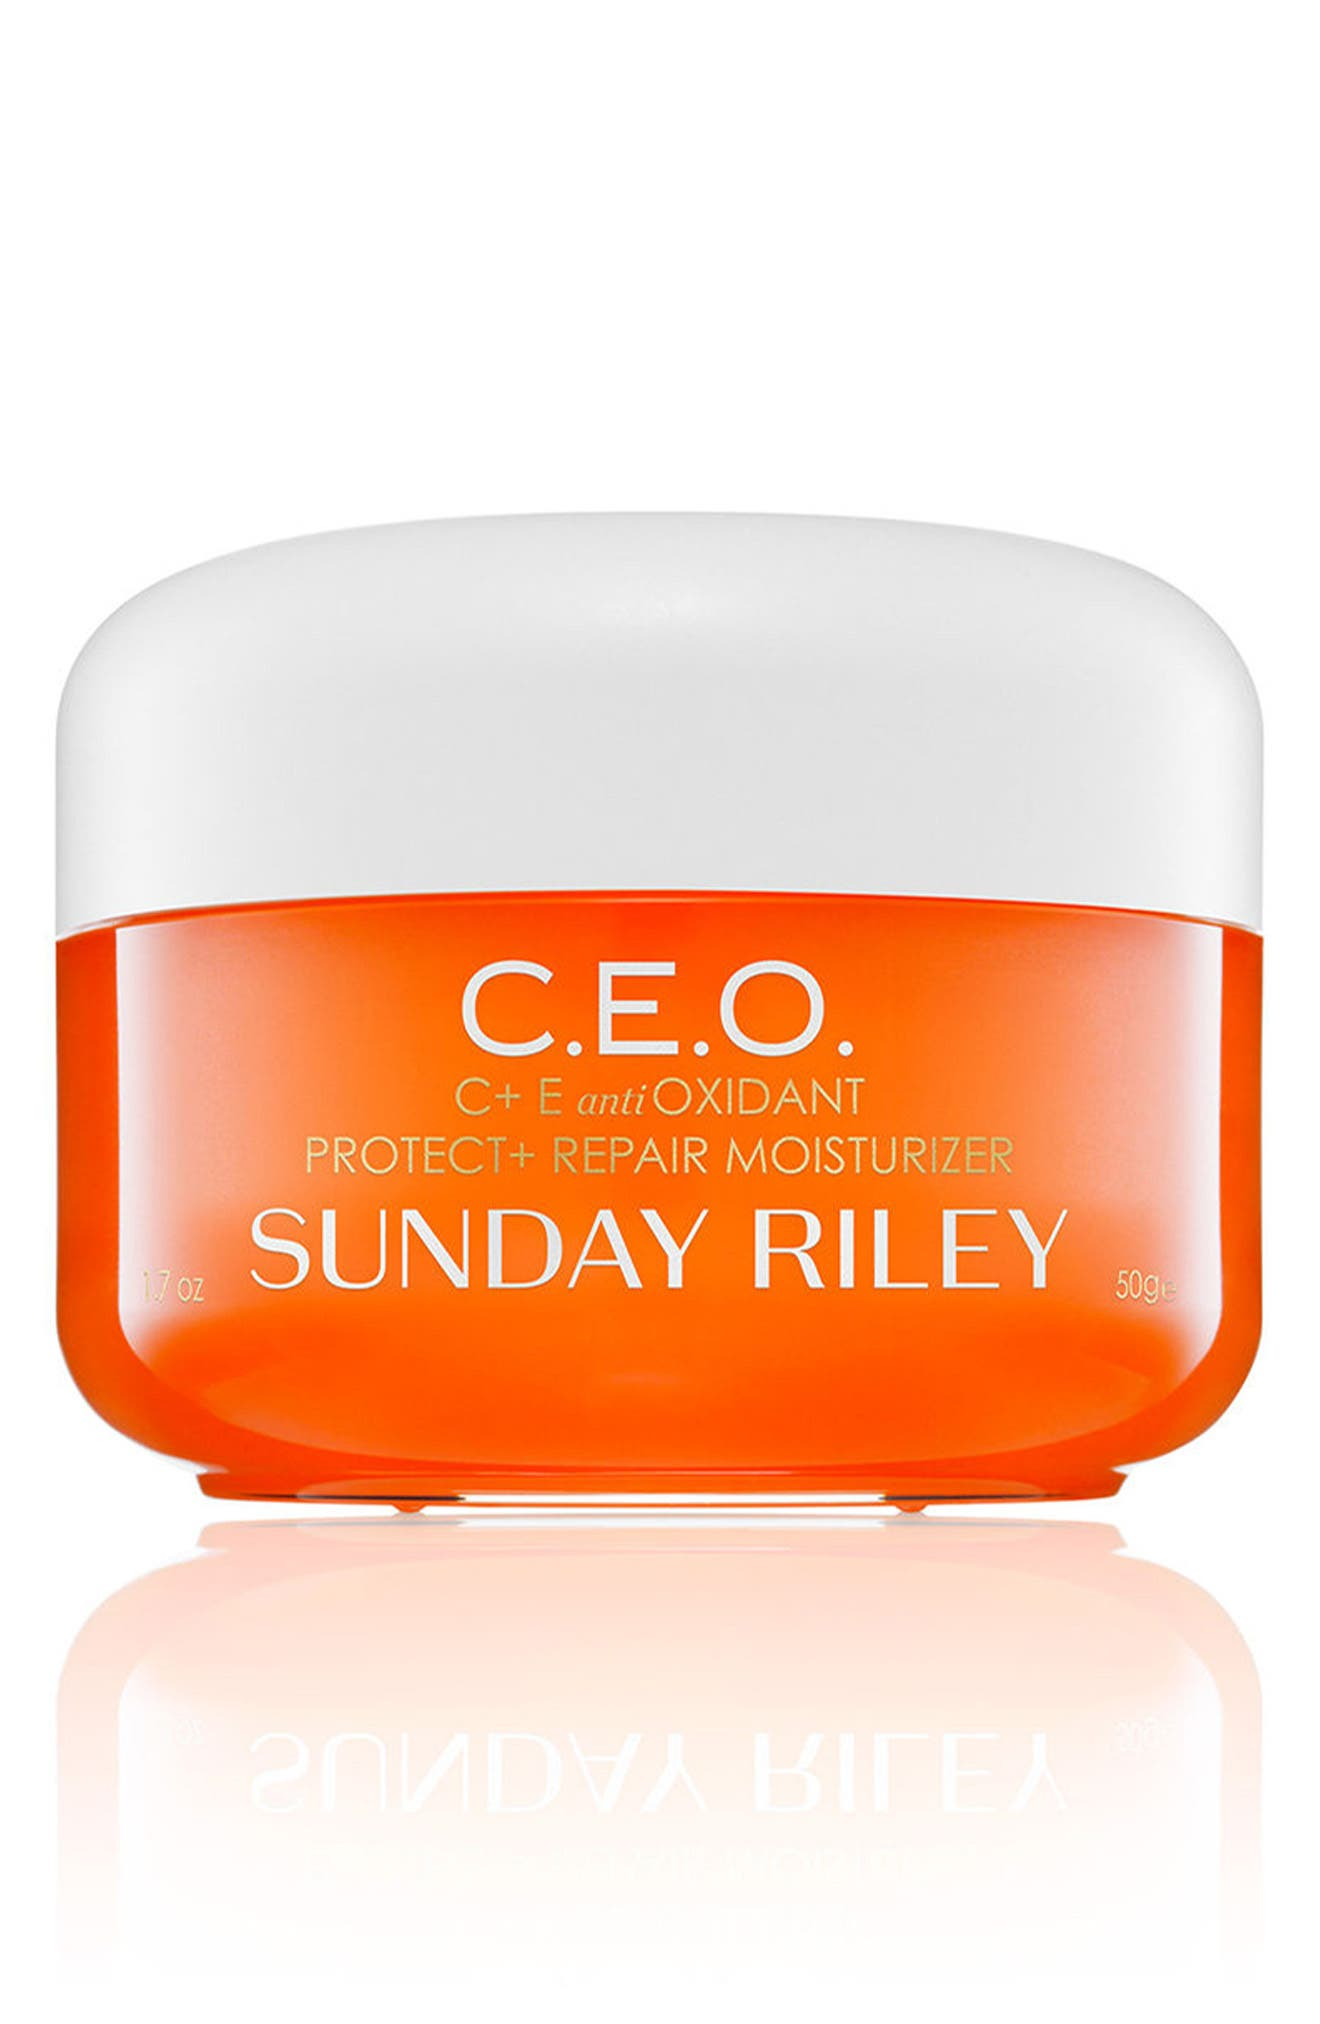 SPACE.NK.apothecary Sunday Riley C.E.O. C + E Antioxidant Protect + Repair Moisturizer